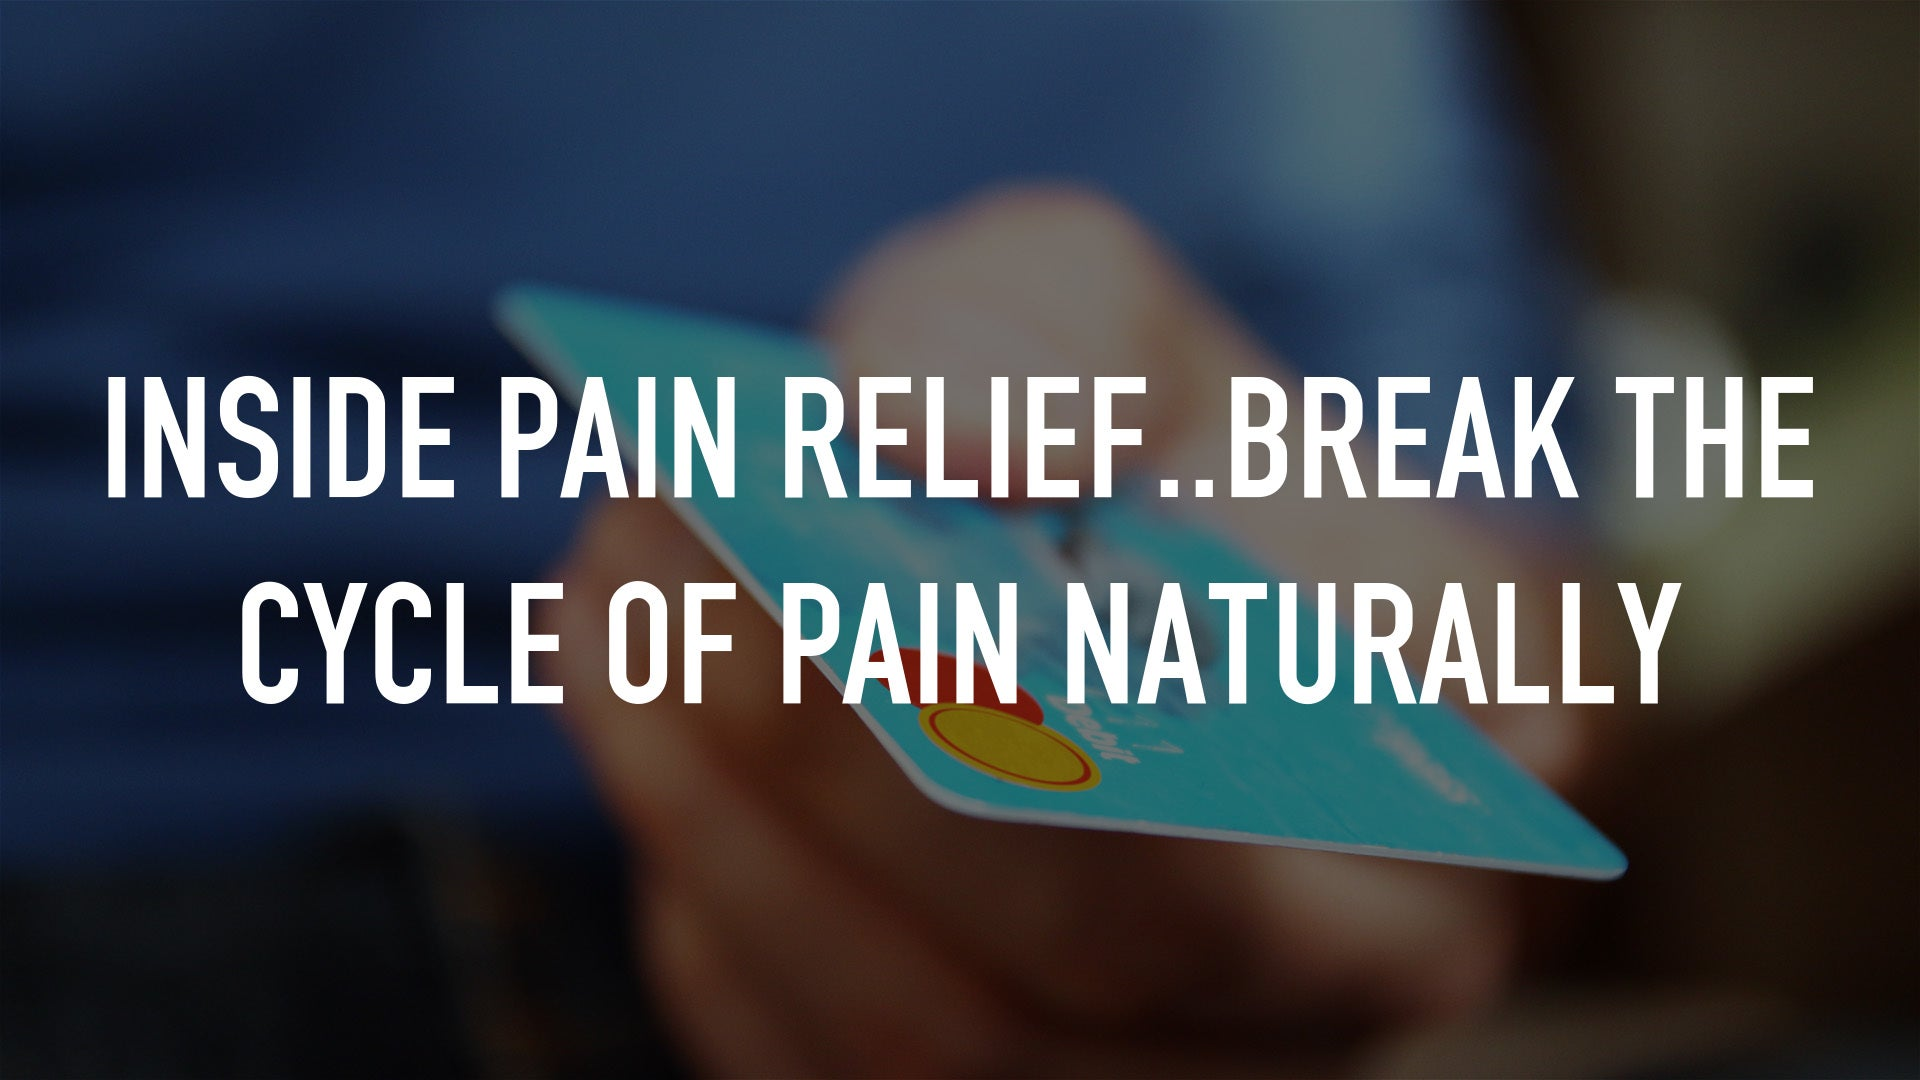 Inside Pain Relief..Break the Cycle of Pain Naturally